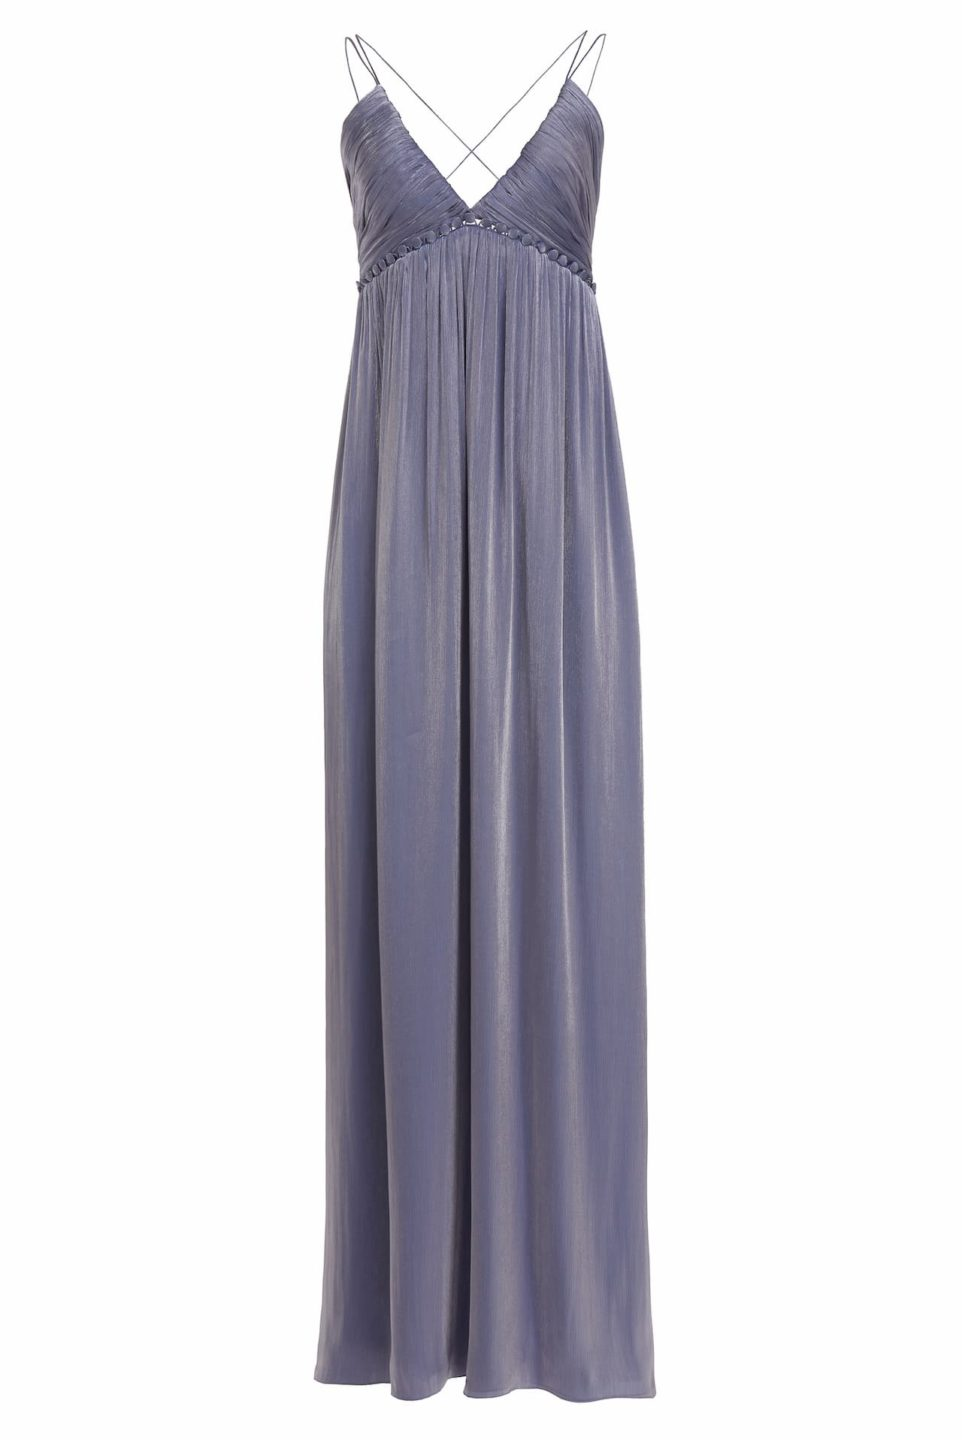 Nissa PS2156 Blue Iridescent Lurex Georgette Emmpire Gown with Triangle Top and Button Detailing